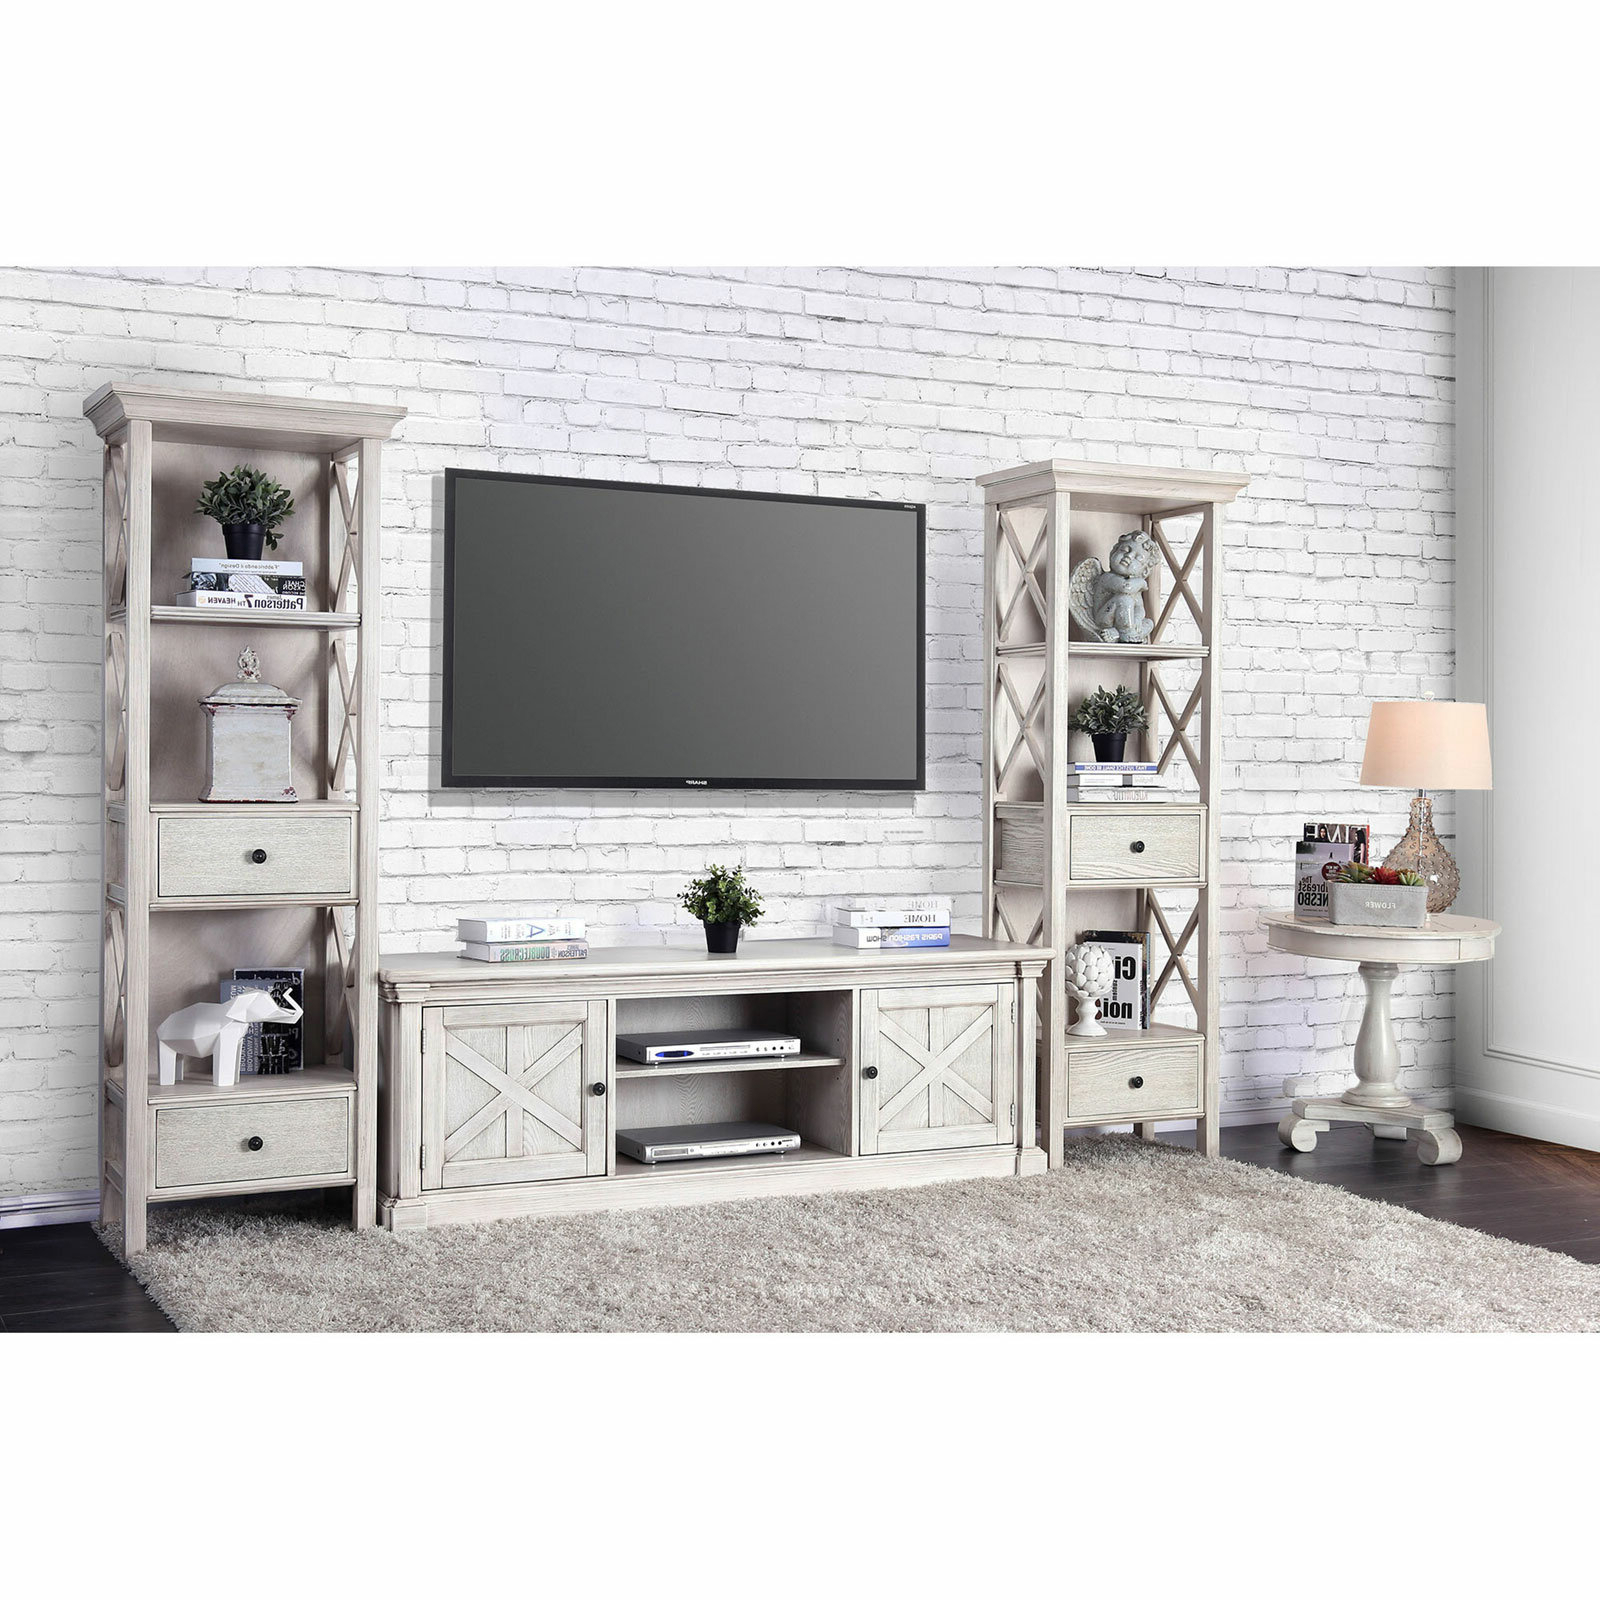 "Parmelee Tv Stands For Tvs Up To 65"" Intended For Well Known Leandra Tv Stand For Tvs Up To 70"" (Gallery 18 of 20)"